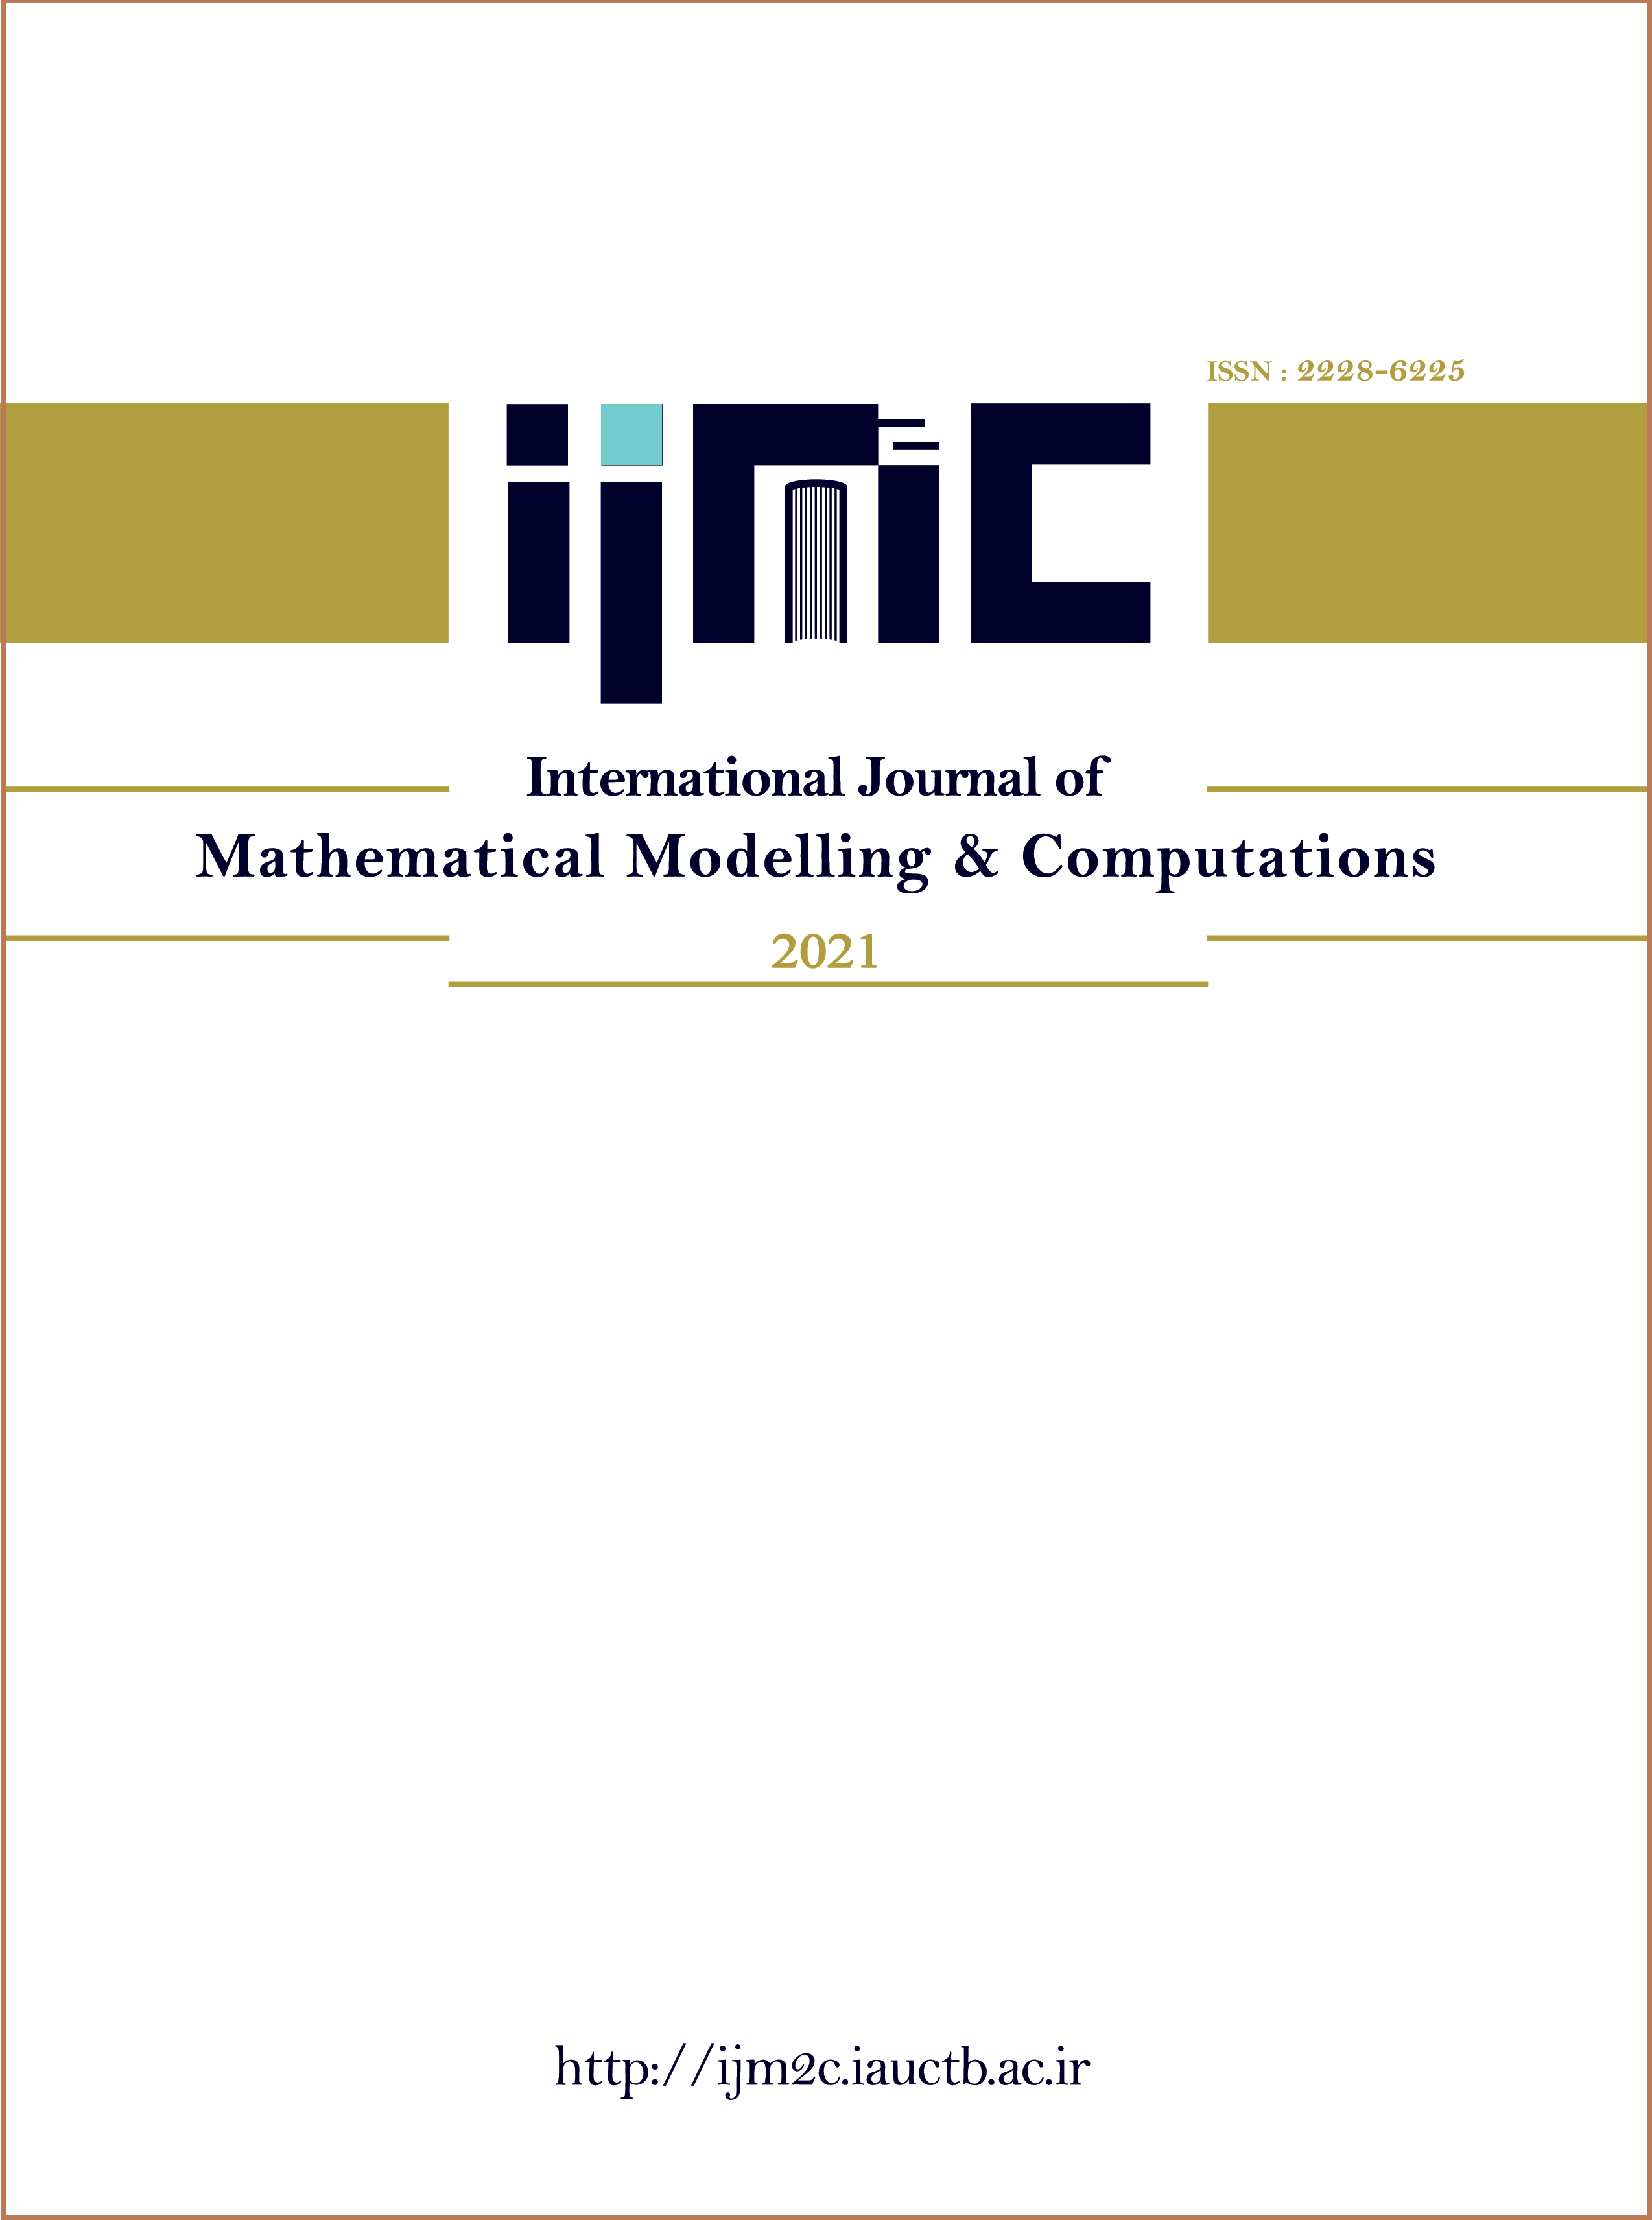 International Journal of Mathematical Modelling & Computations